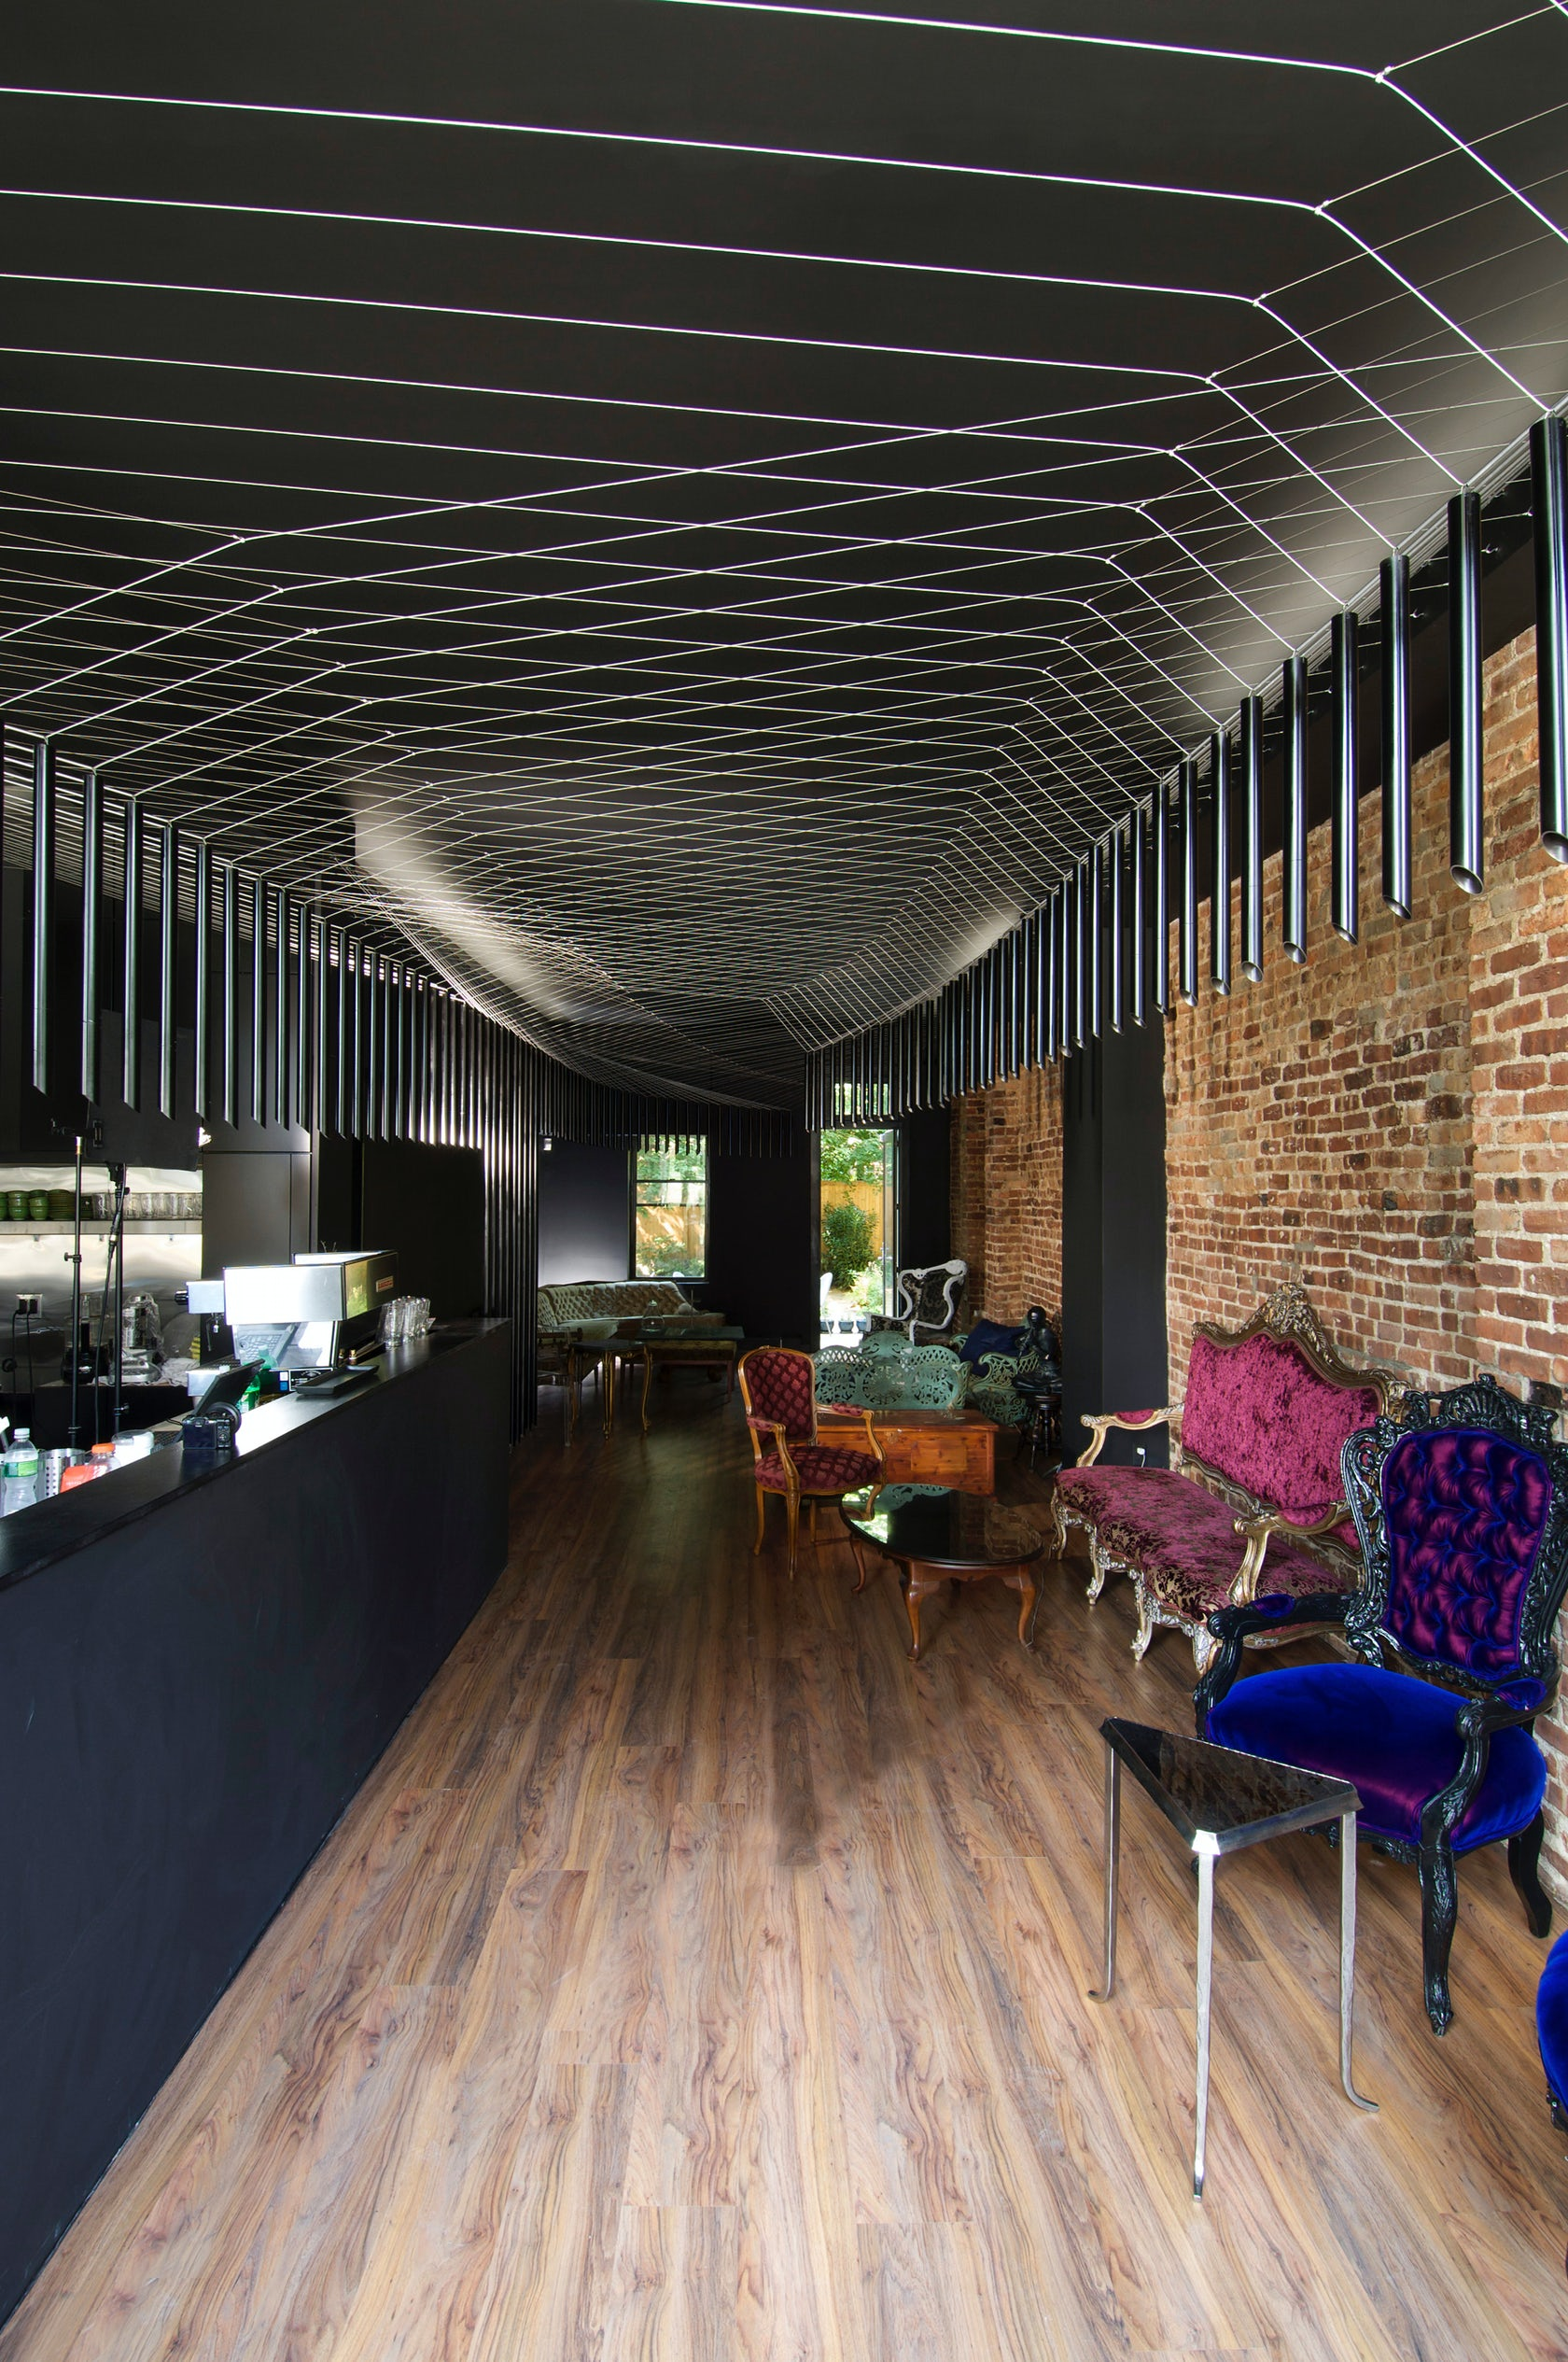 Taylor and miller architecture and design architizer for New york based architecture firms